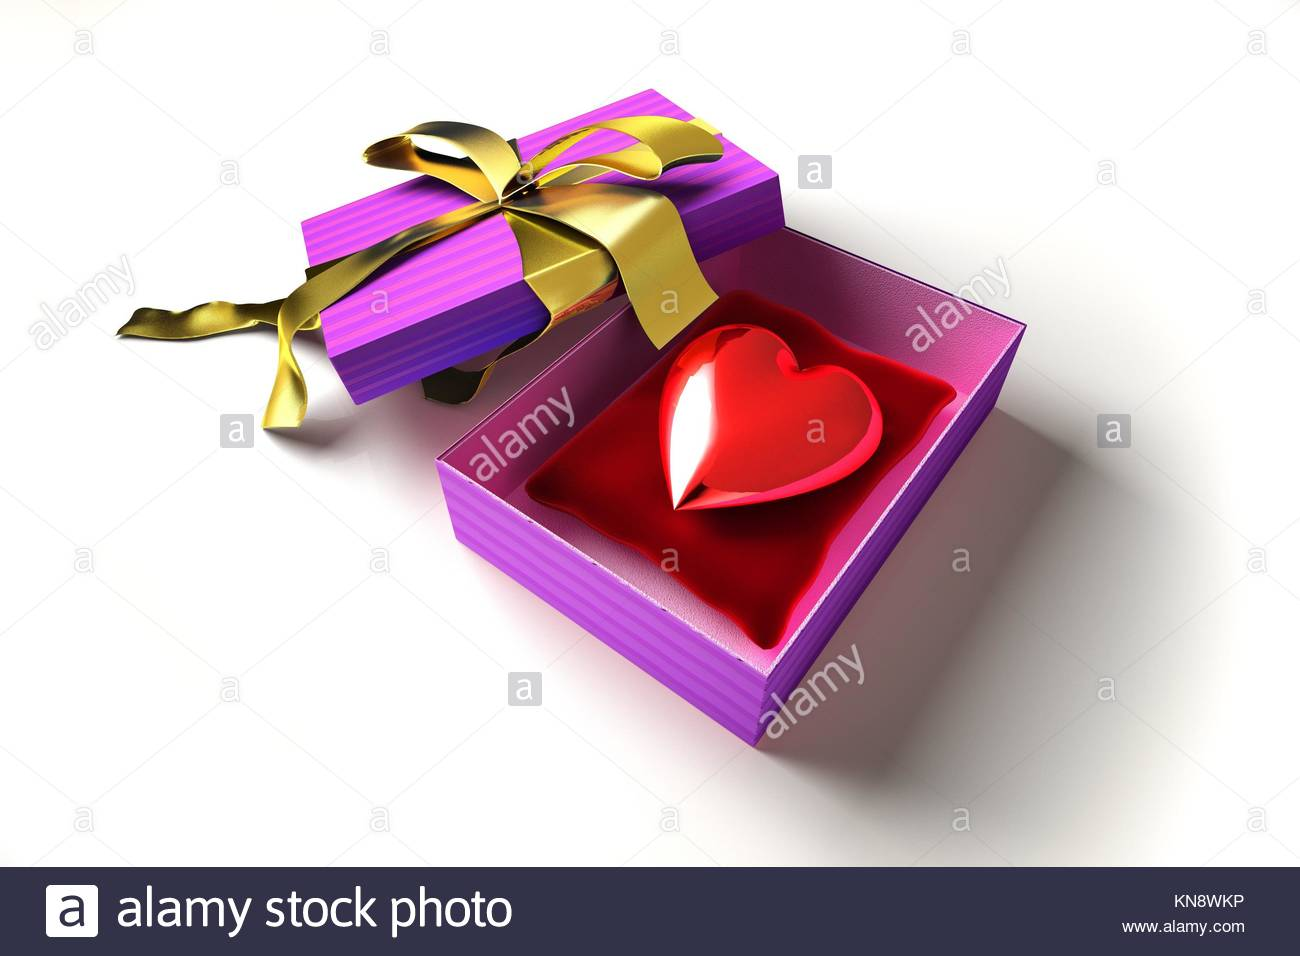 Gift package, with ribboned open cup, with a shiny heart inside, on a white surface. Stock Photo